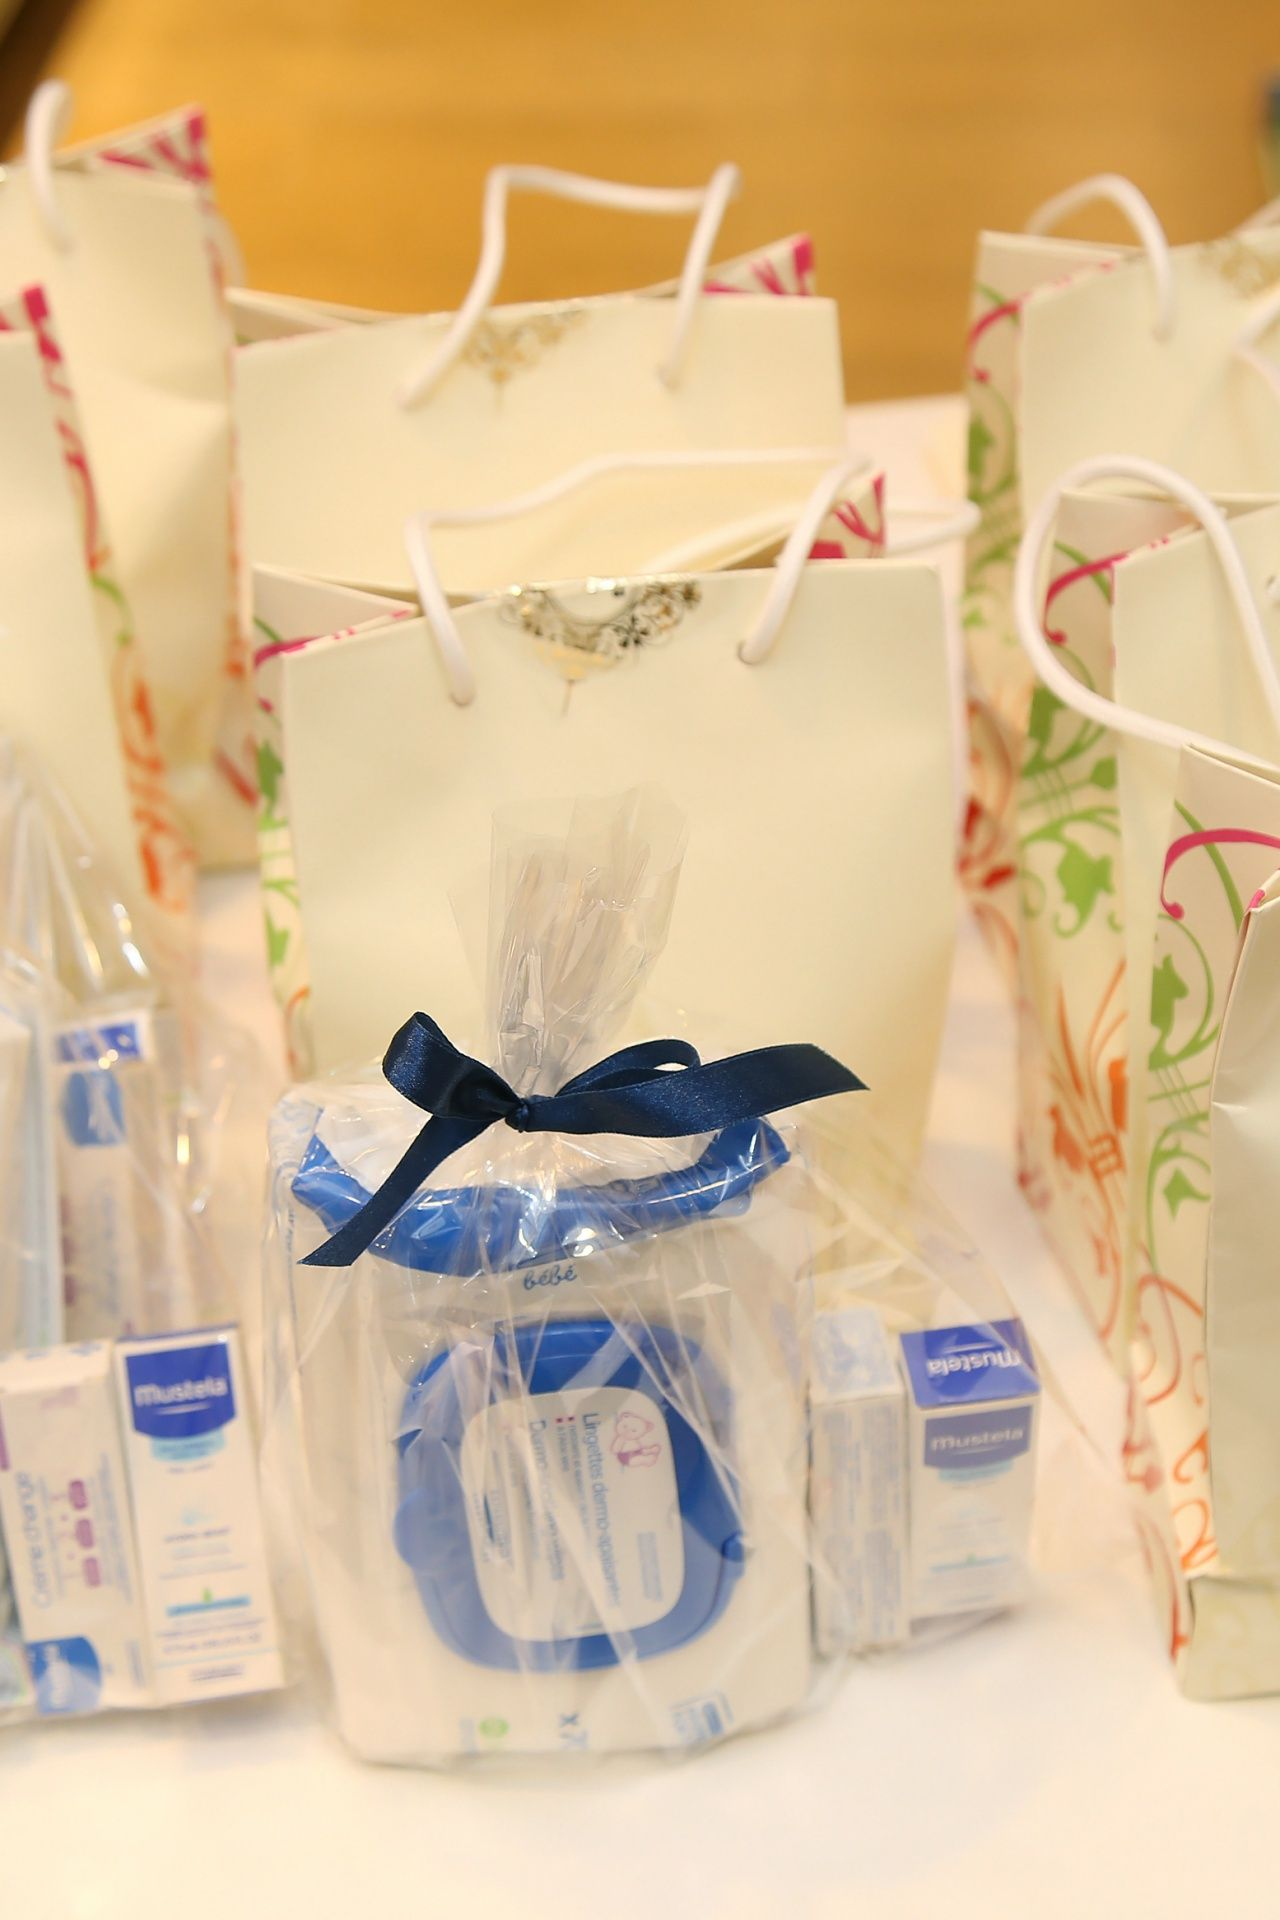 Gifts and giveaways from Mustela and Rustan's